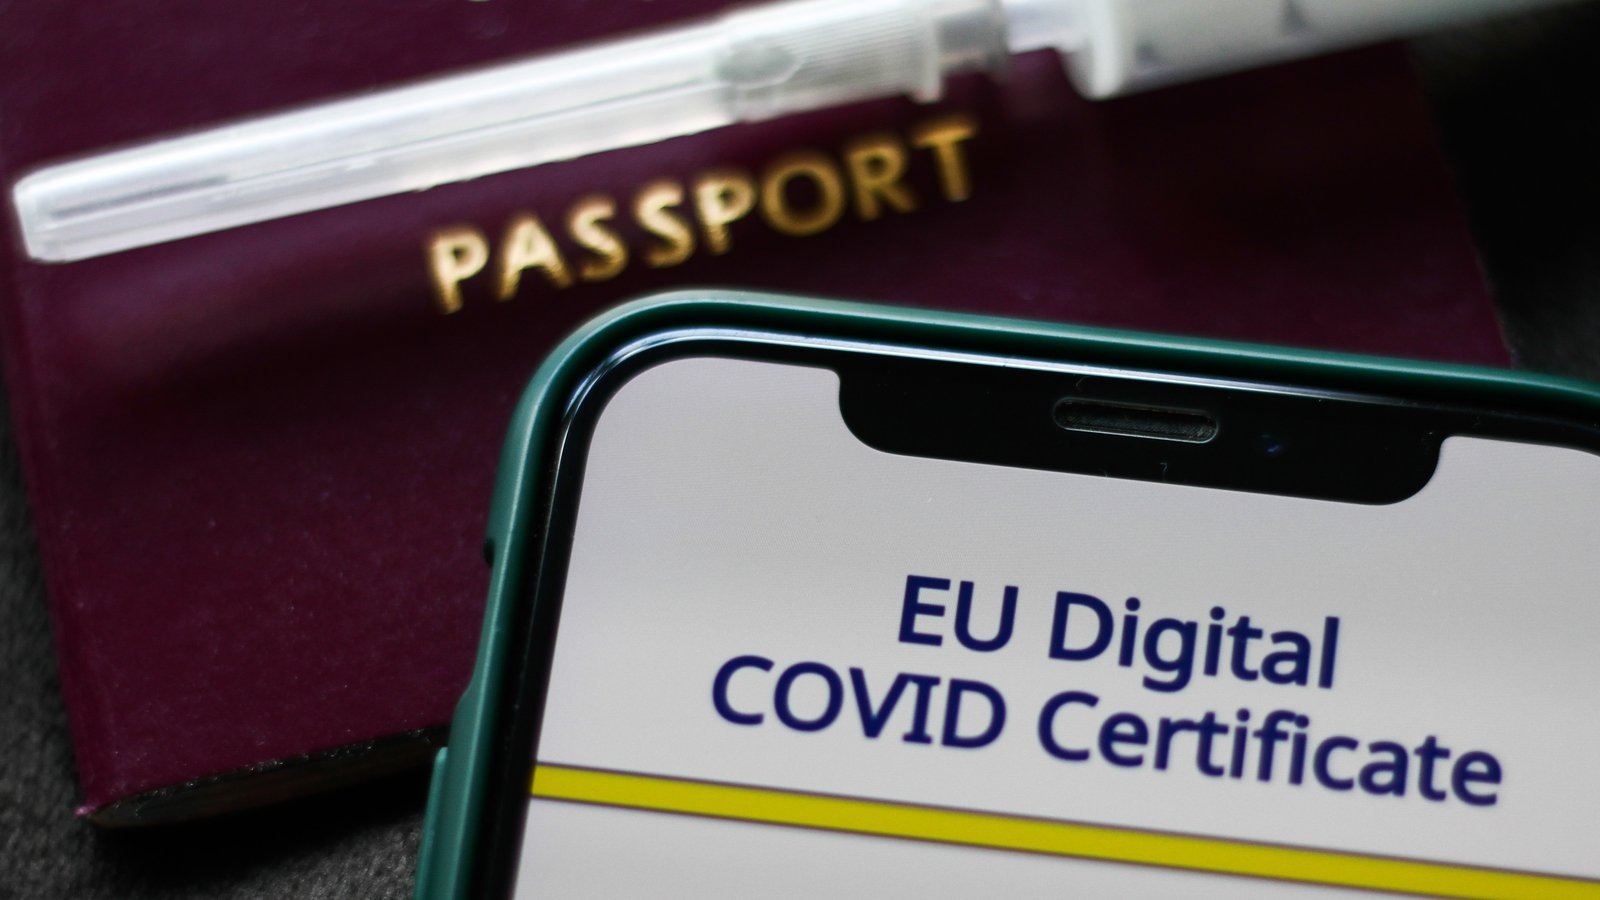 Are businesses actually checking for Covid certs?